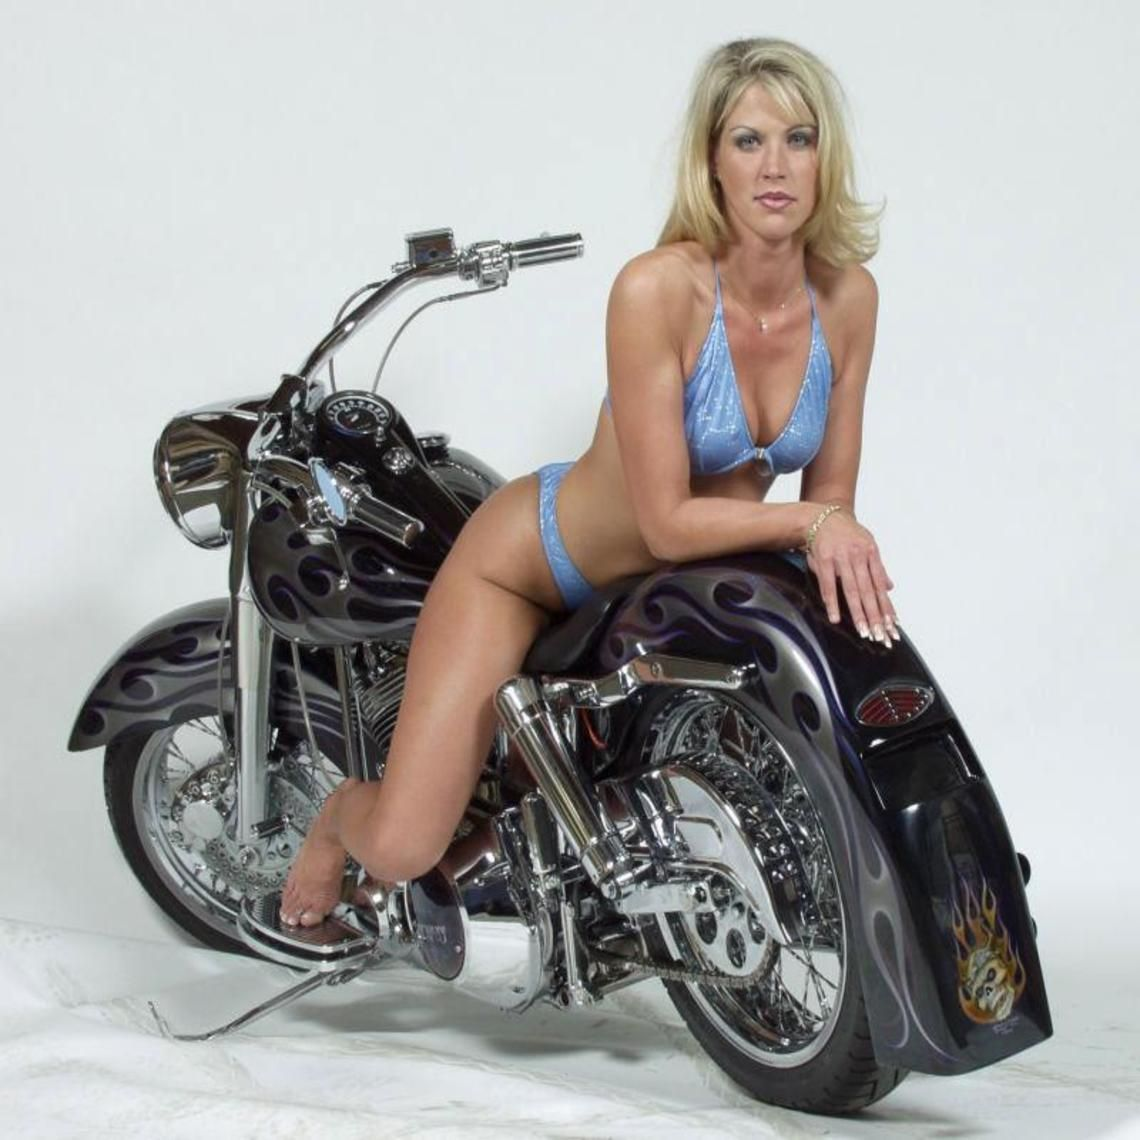 Hot model bike wallpaper pinterest hottest models girl bike hot model bike girl bikeharley davidsonwallpaperhottest sciox Image collections